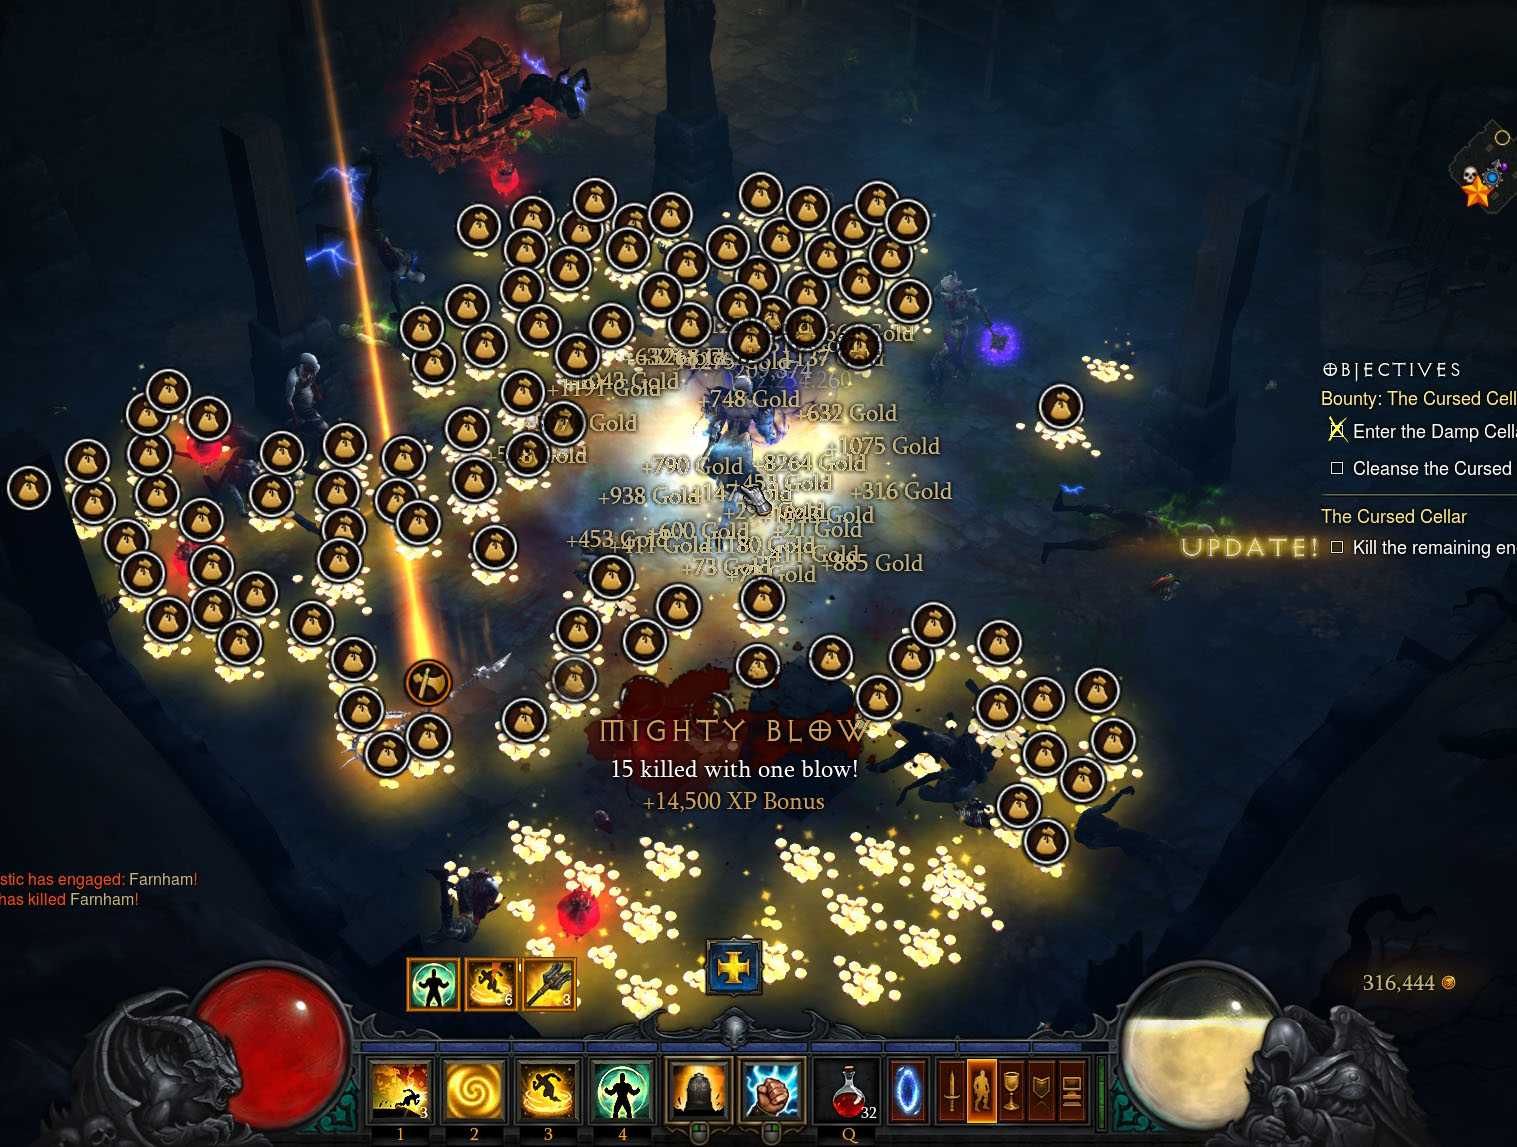 Blizzard on Legendary Gem Bugs - Diablo 3 News, Forums and Wikis